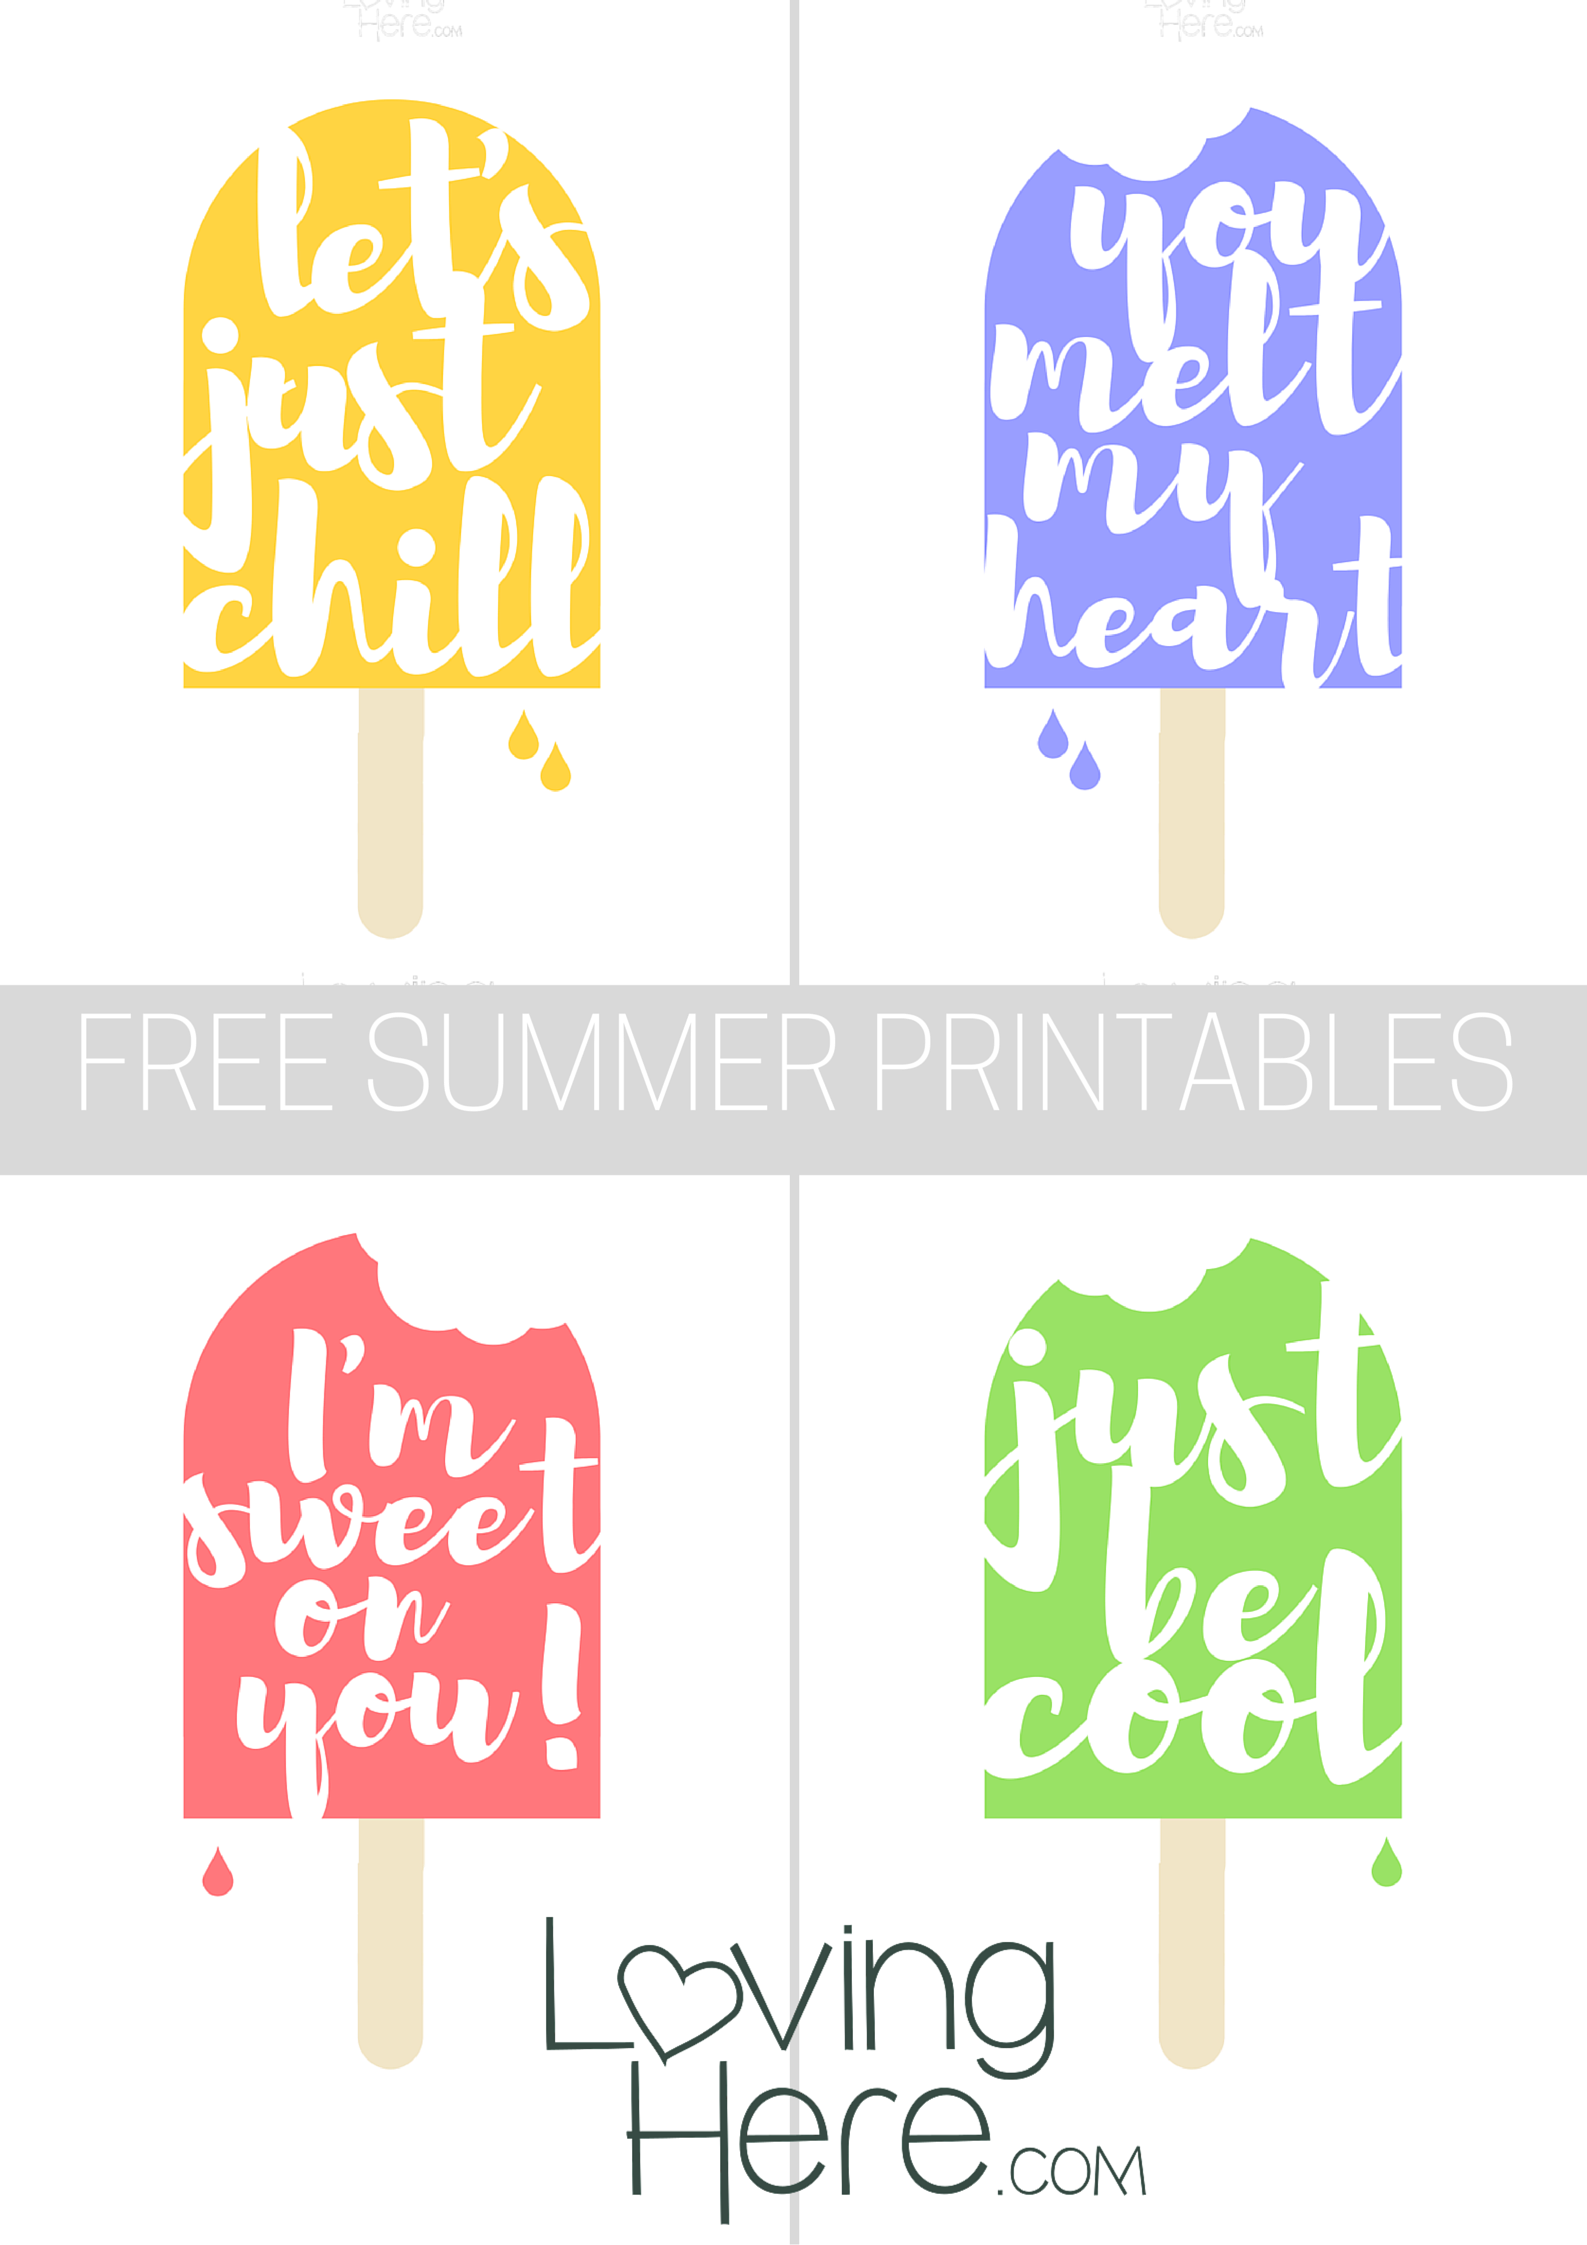 photo relating to Popsicle Printable referred to as Free of charge Summer season Popsicle Printables - Freebie FriYAY - Loving In this article